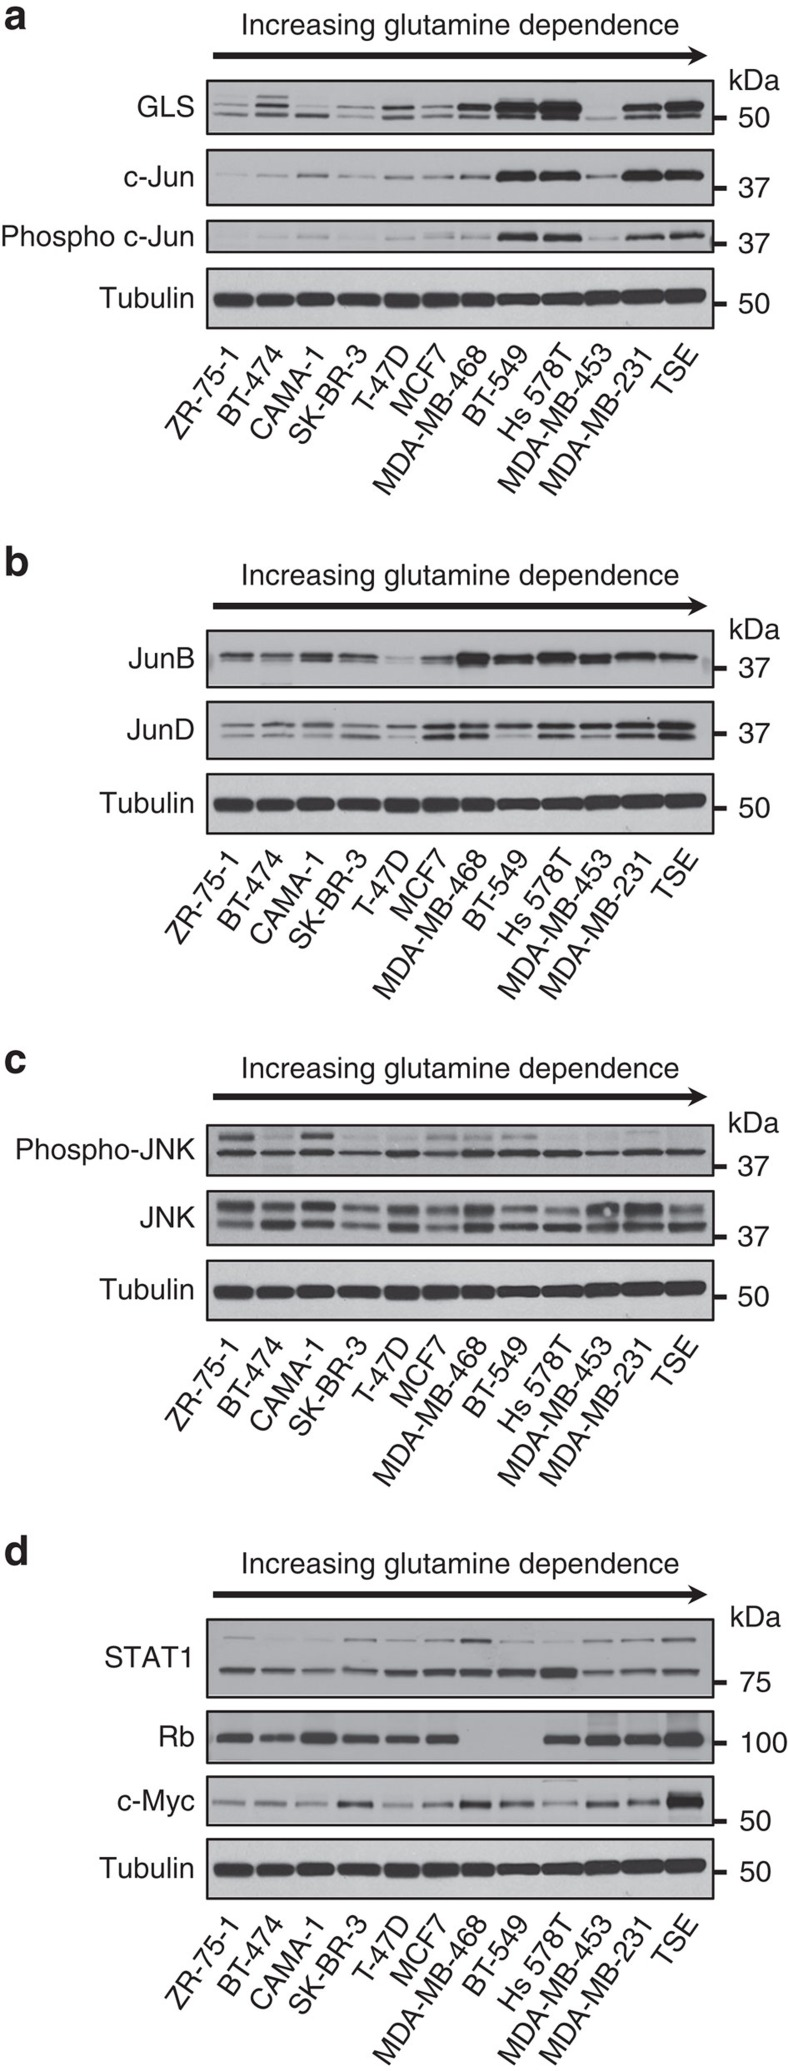 c-Jun correlates strongly with GLS levels in human breast cancer cell lines. Cells were collected at ∼60% confluency from <t>RPMI</t> growth medium supplemented with 10% <t>FBS,</t> and whole-cell lysates prepared and analysed by western blot. Samples were ordered according to glutamine dependence, increasing from left to right ( Supplementary Fig. 3 ). ( a ) Correlation between c-Jun/phospho-c-Jun and GLS levels. Quantification of GLS and c-Jun band intensities allowed a Pearson correlation coefficient of 0.85 to be determined ( Supplementary Fig. 4a ). ( b ) Other Jun-family members do not correlate strongly with GLS levels. ( c ) Under 10% FBS culture conditions, p46 JNK (lower band) is active in all of the breast cancer cell lines. Neither JNK nor phospho-JNK correlate with GLS levels. ( d ) Other reported regulators of GLS expression do not strongly correlate with GLS levels.